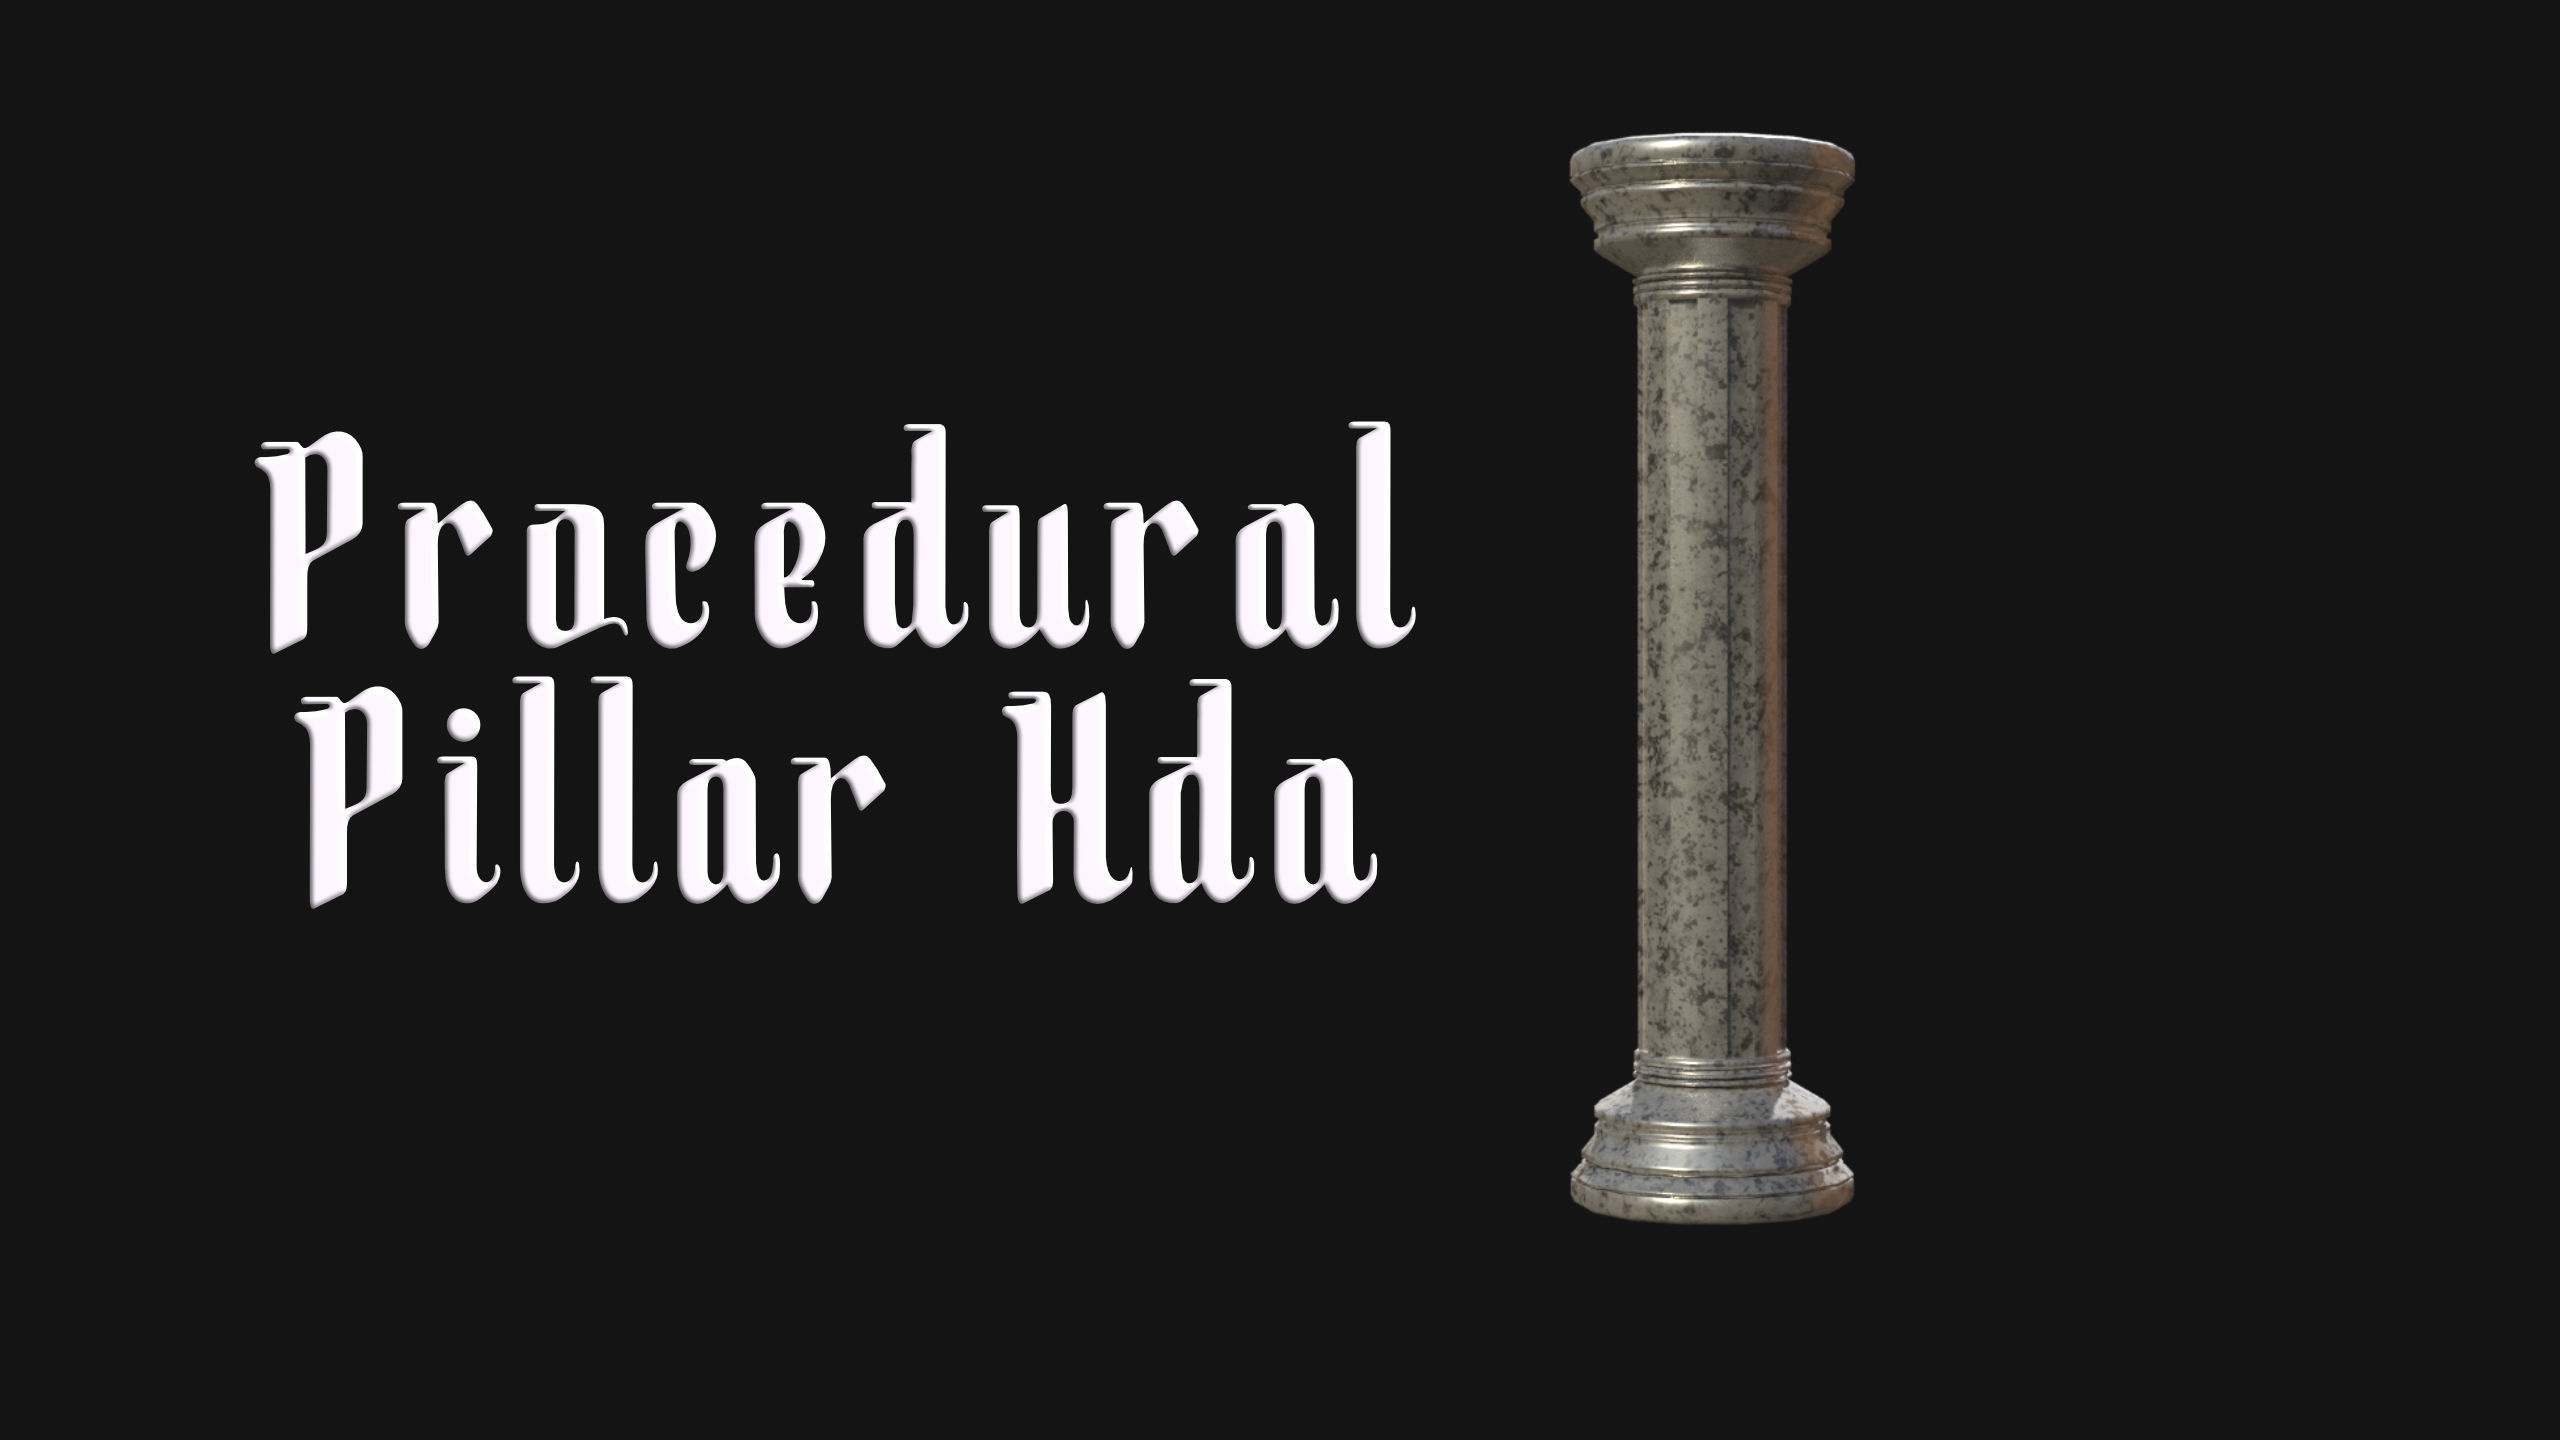 Procedural pillar column generator Hda